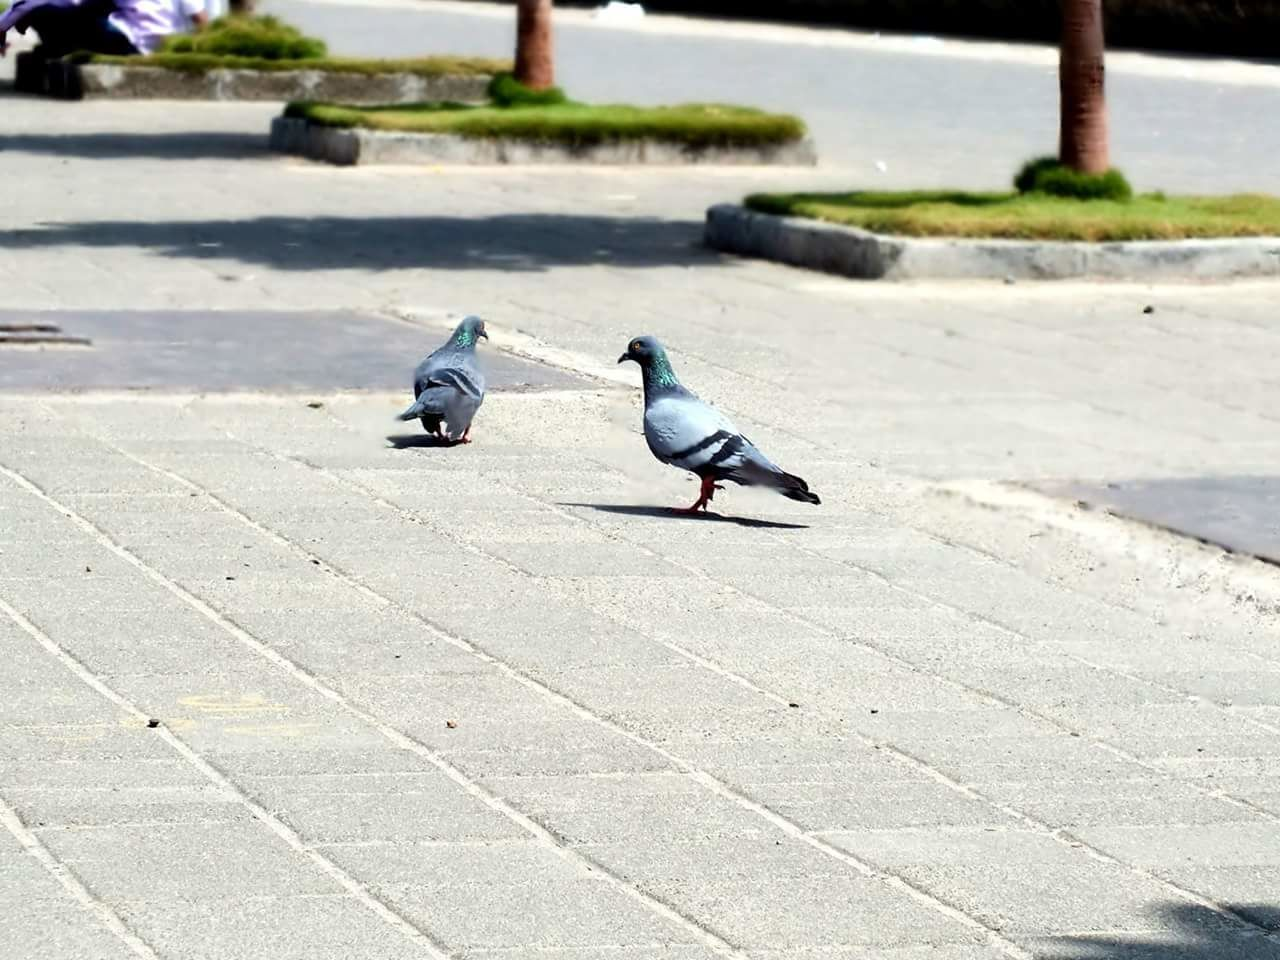 Birds Pigeon Bird Animal Themes Animals In The Wild Dove - Bird Focus On Foreground Animal Wildlife Outdoors Songbird  Togetherness Nature Living Organism Pigeons Pigeonslife Perching Sunlight No People Mourning Dove Pigeons On The Road